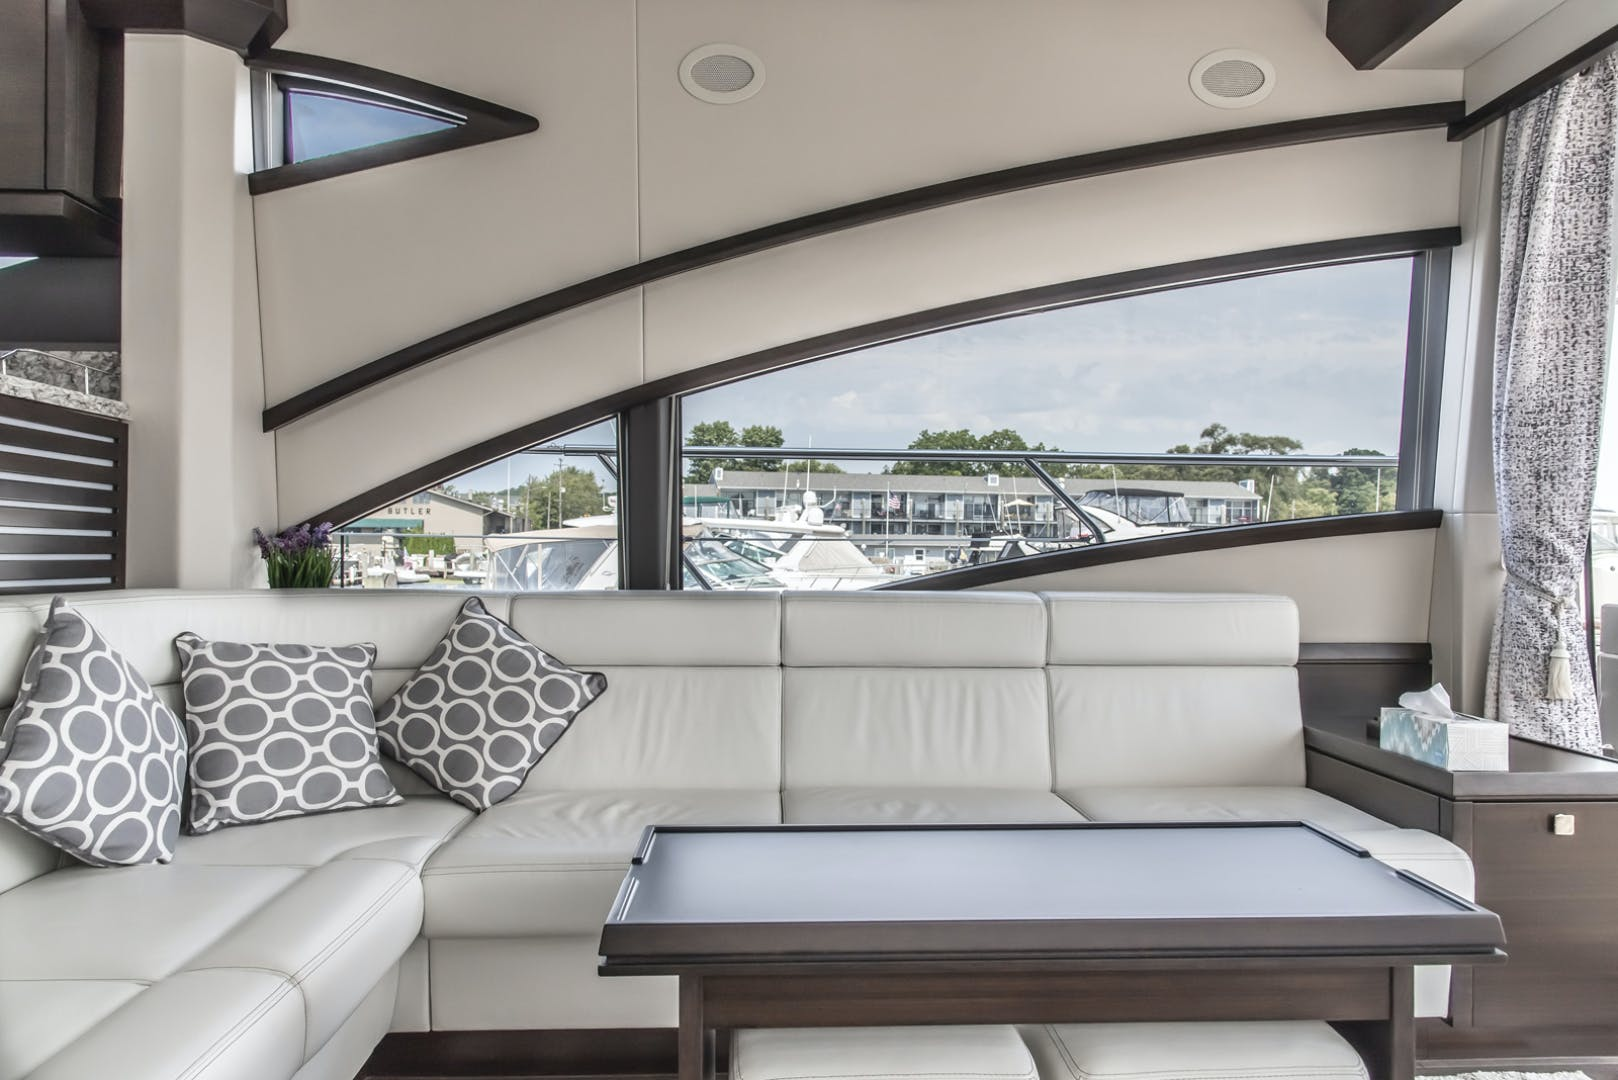 2018 Neptunus 65' Motor Yacht Express LIQUID WISDOM | Picture 6 of 90